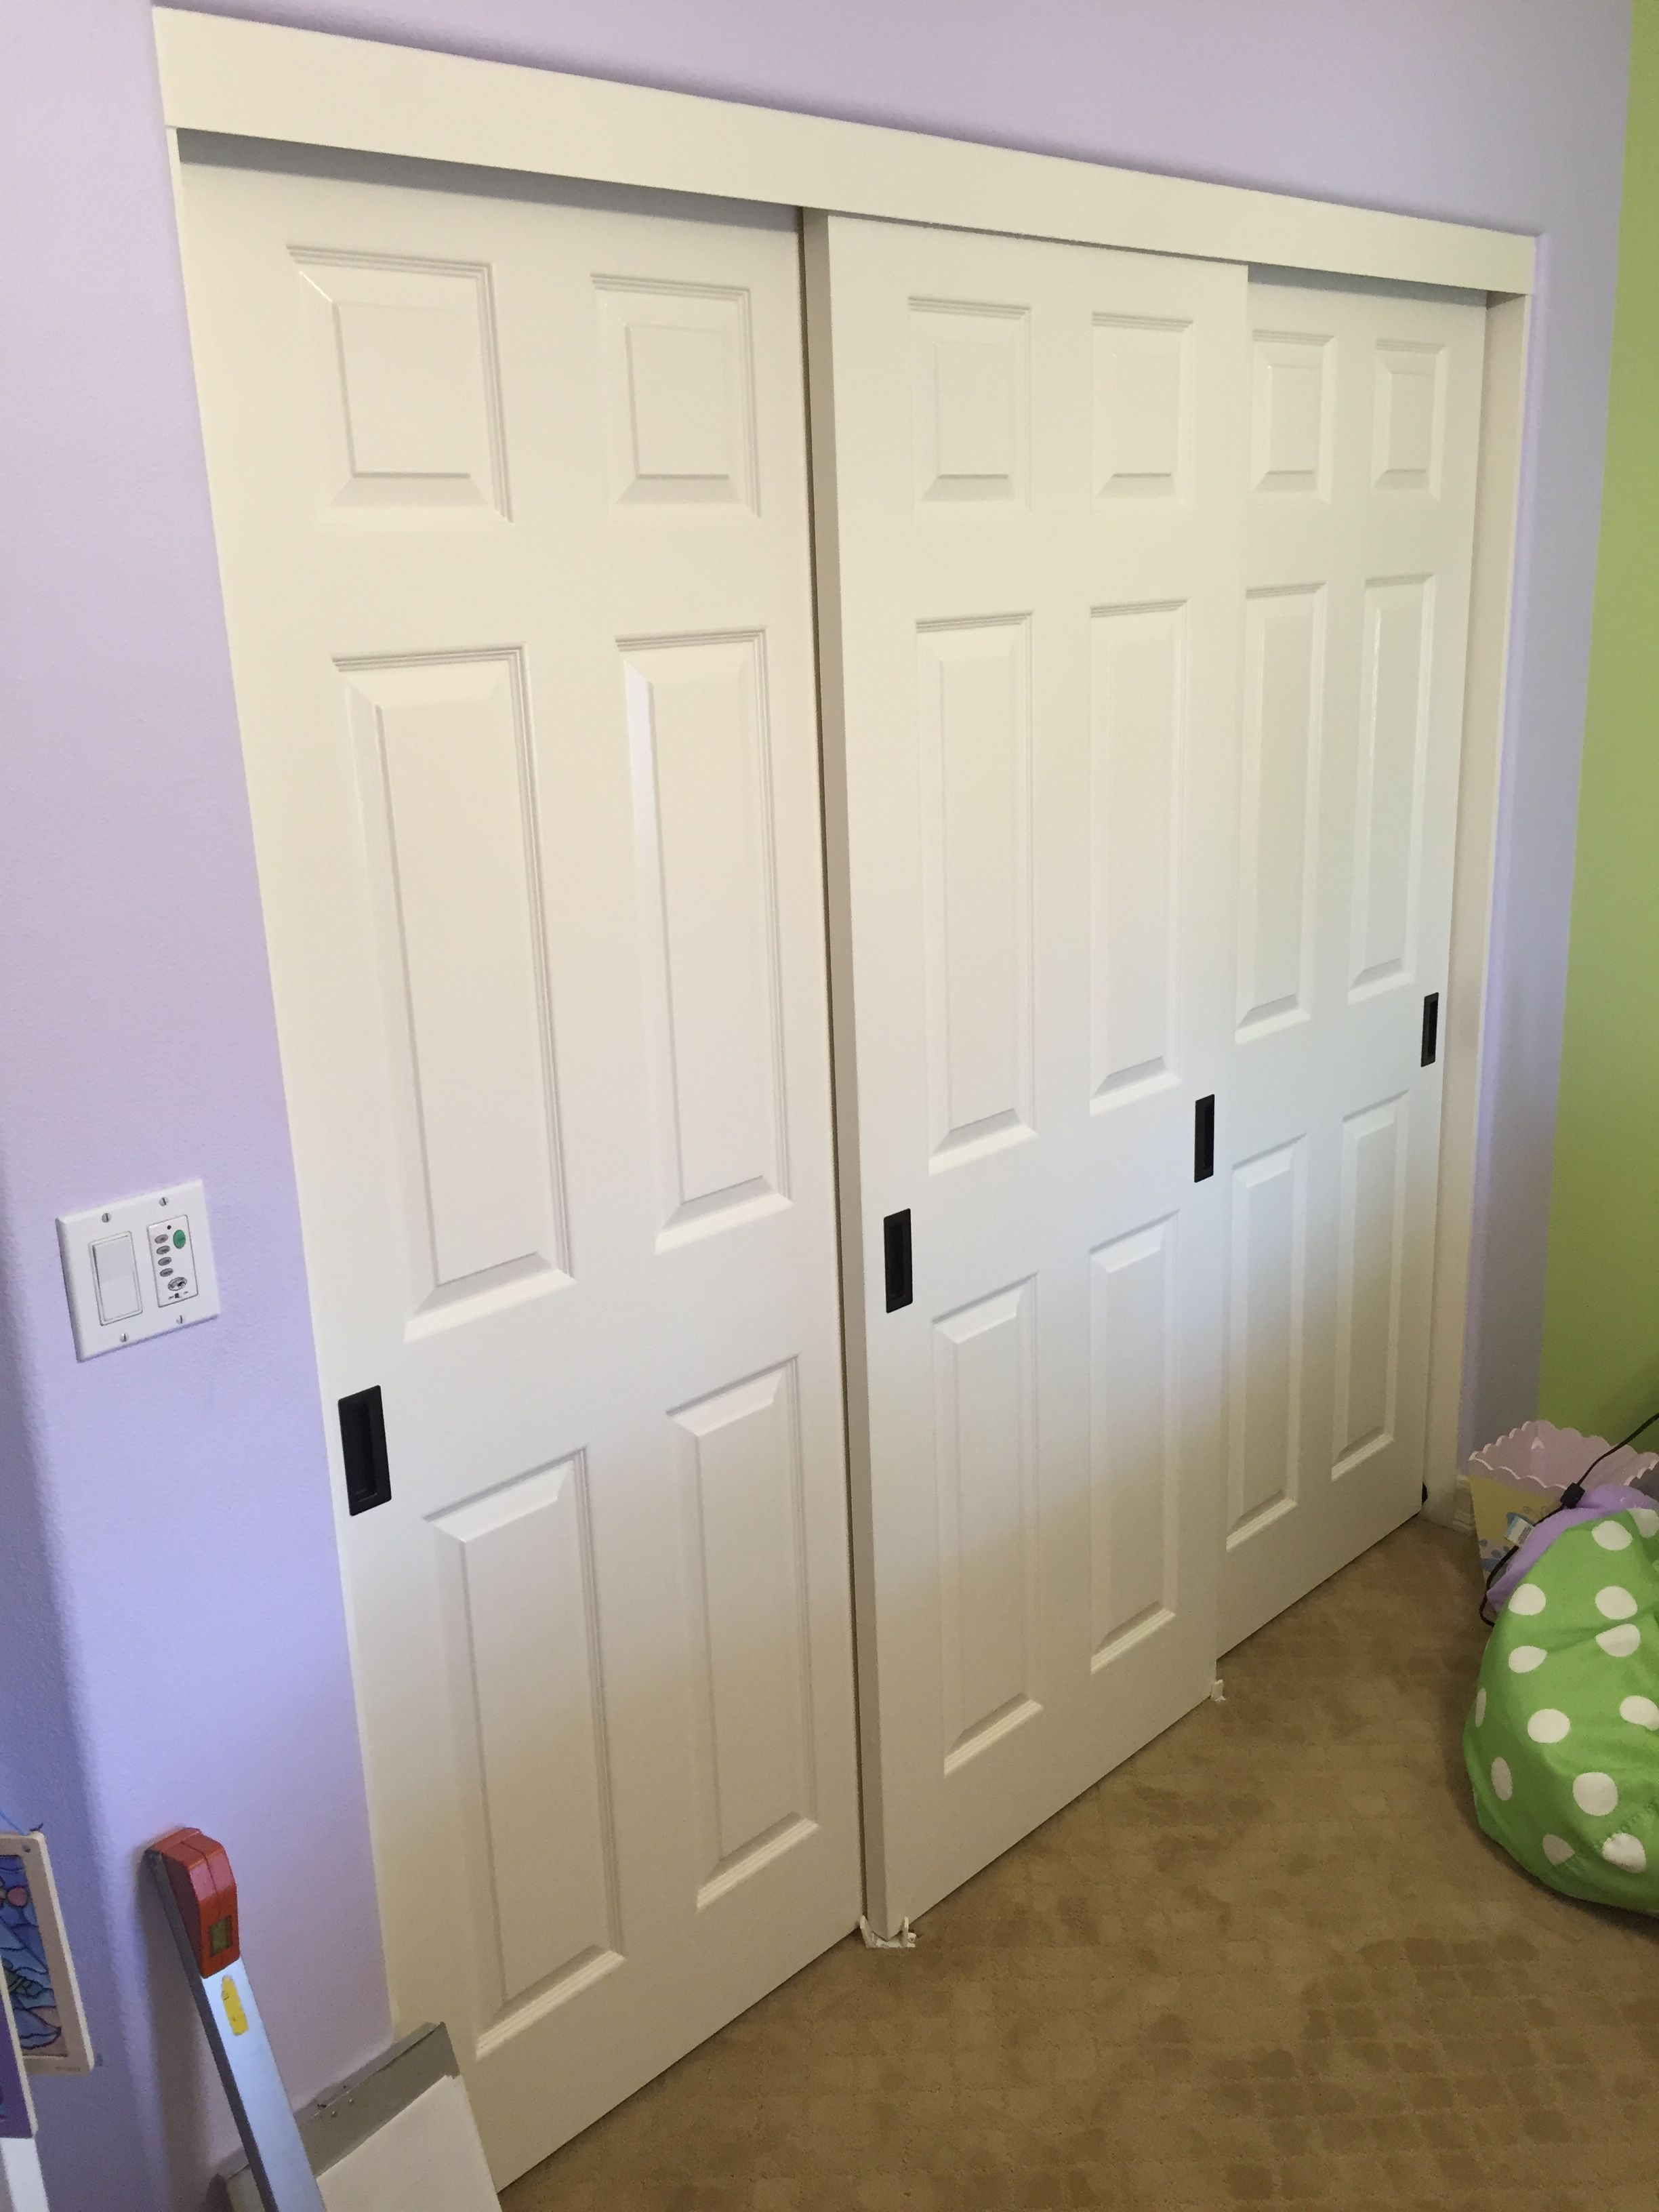 3 Panel 3 Track Hollow Core Sliding Closet Doors. The Style/design Is  Called Colonist Smooth. Are You Looking For Bypass Closet Doors In Laguna  Hills, ...